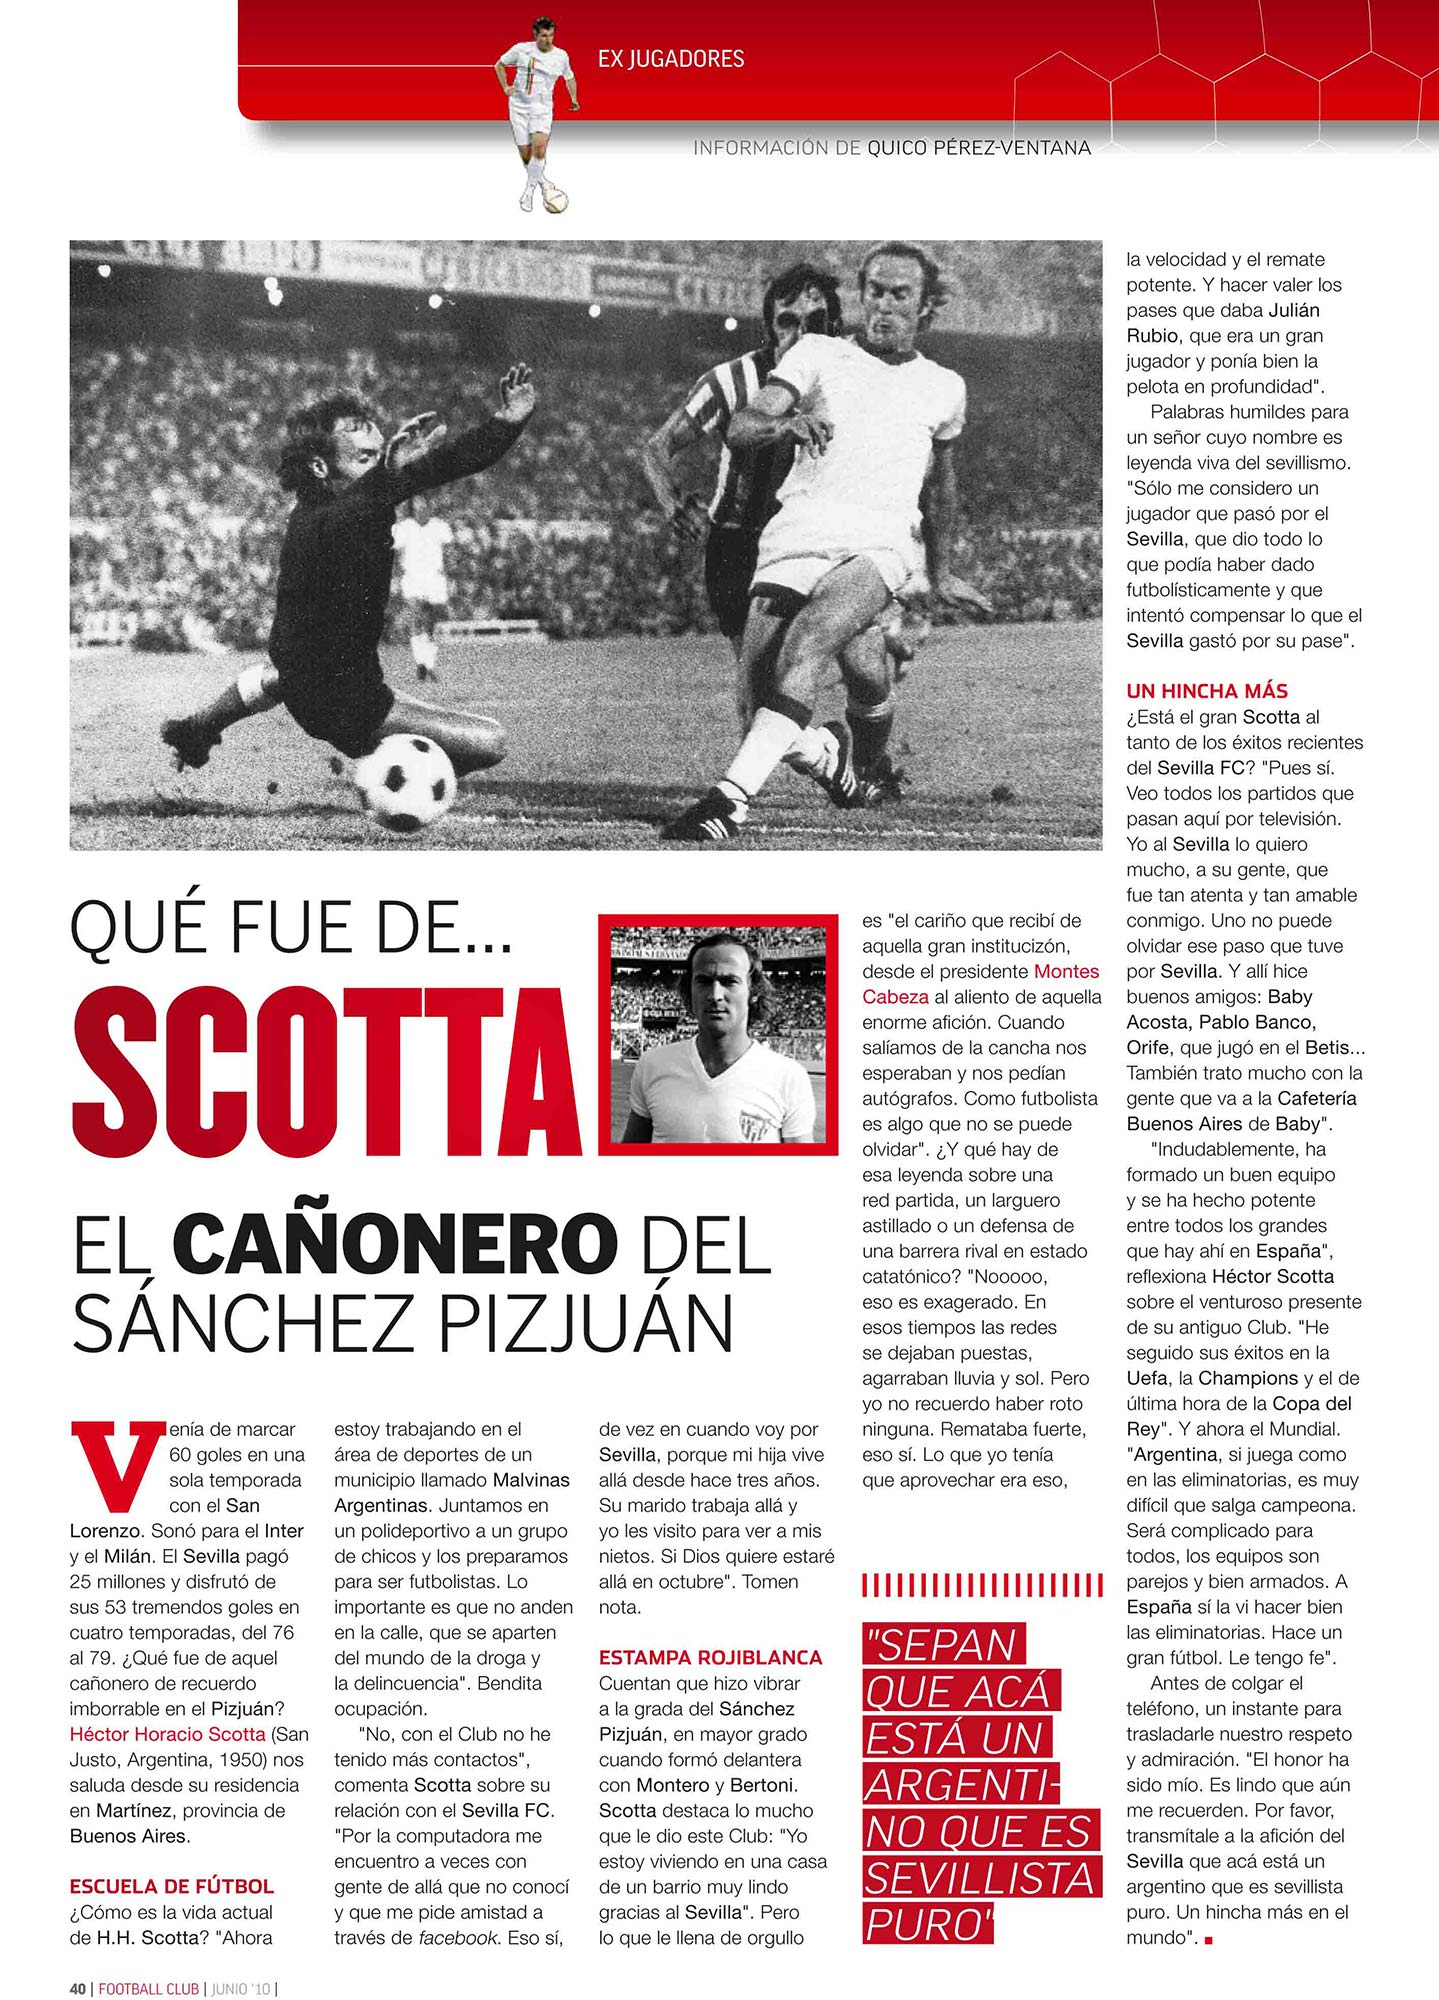 Qué fue de… Héctor Horacio Scotta | Football Club | jun 2010